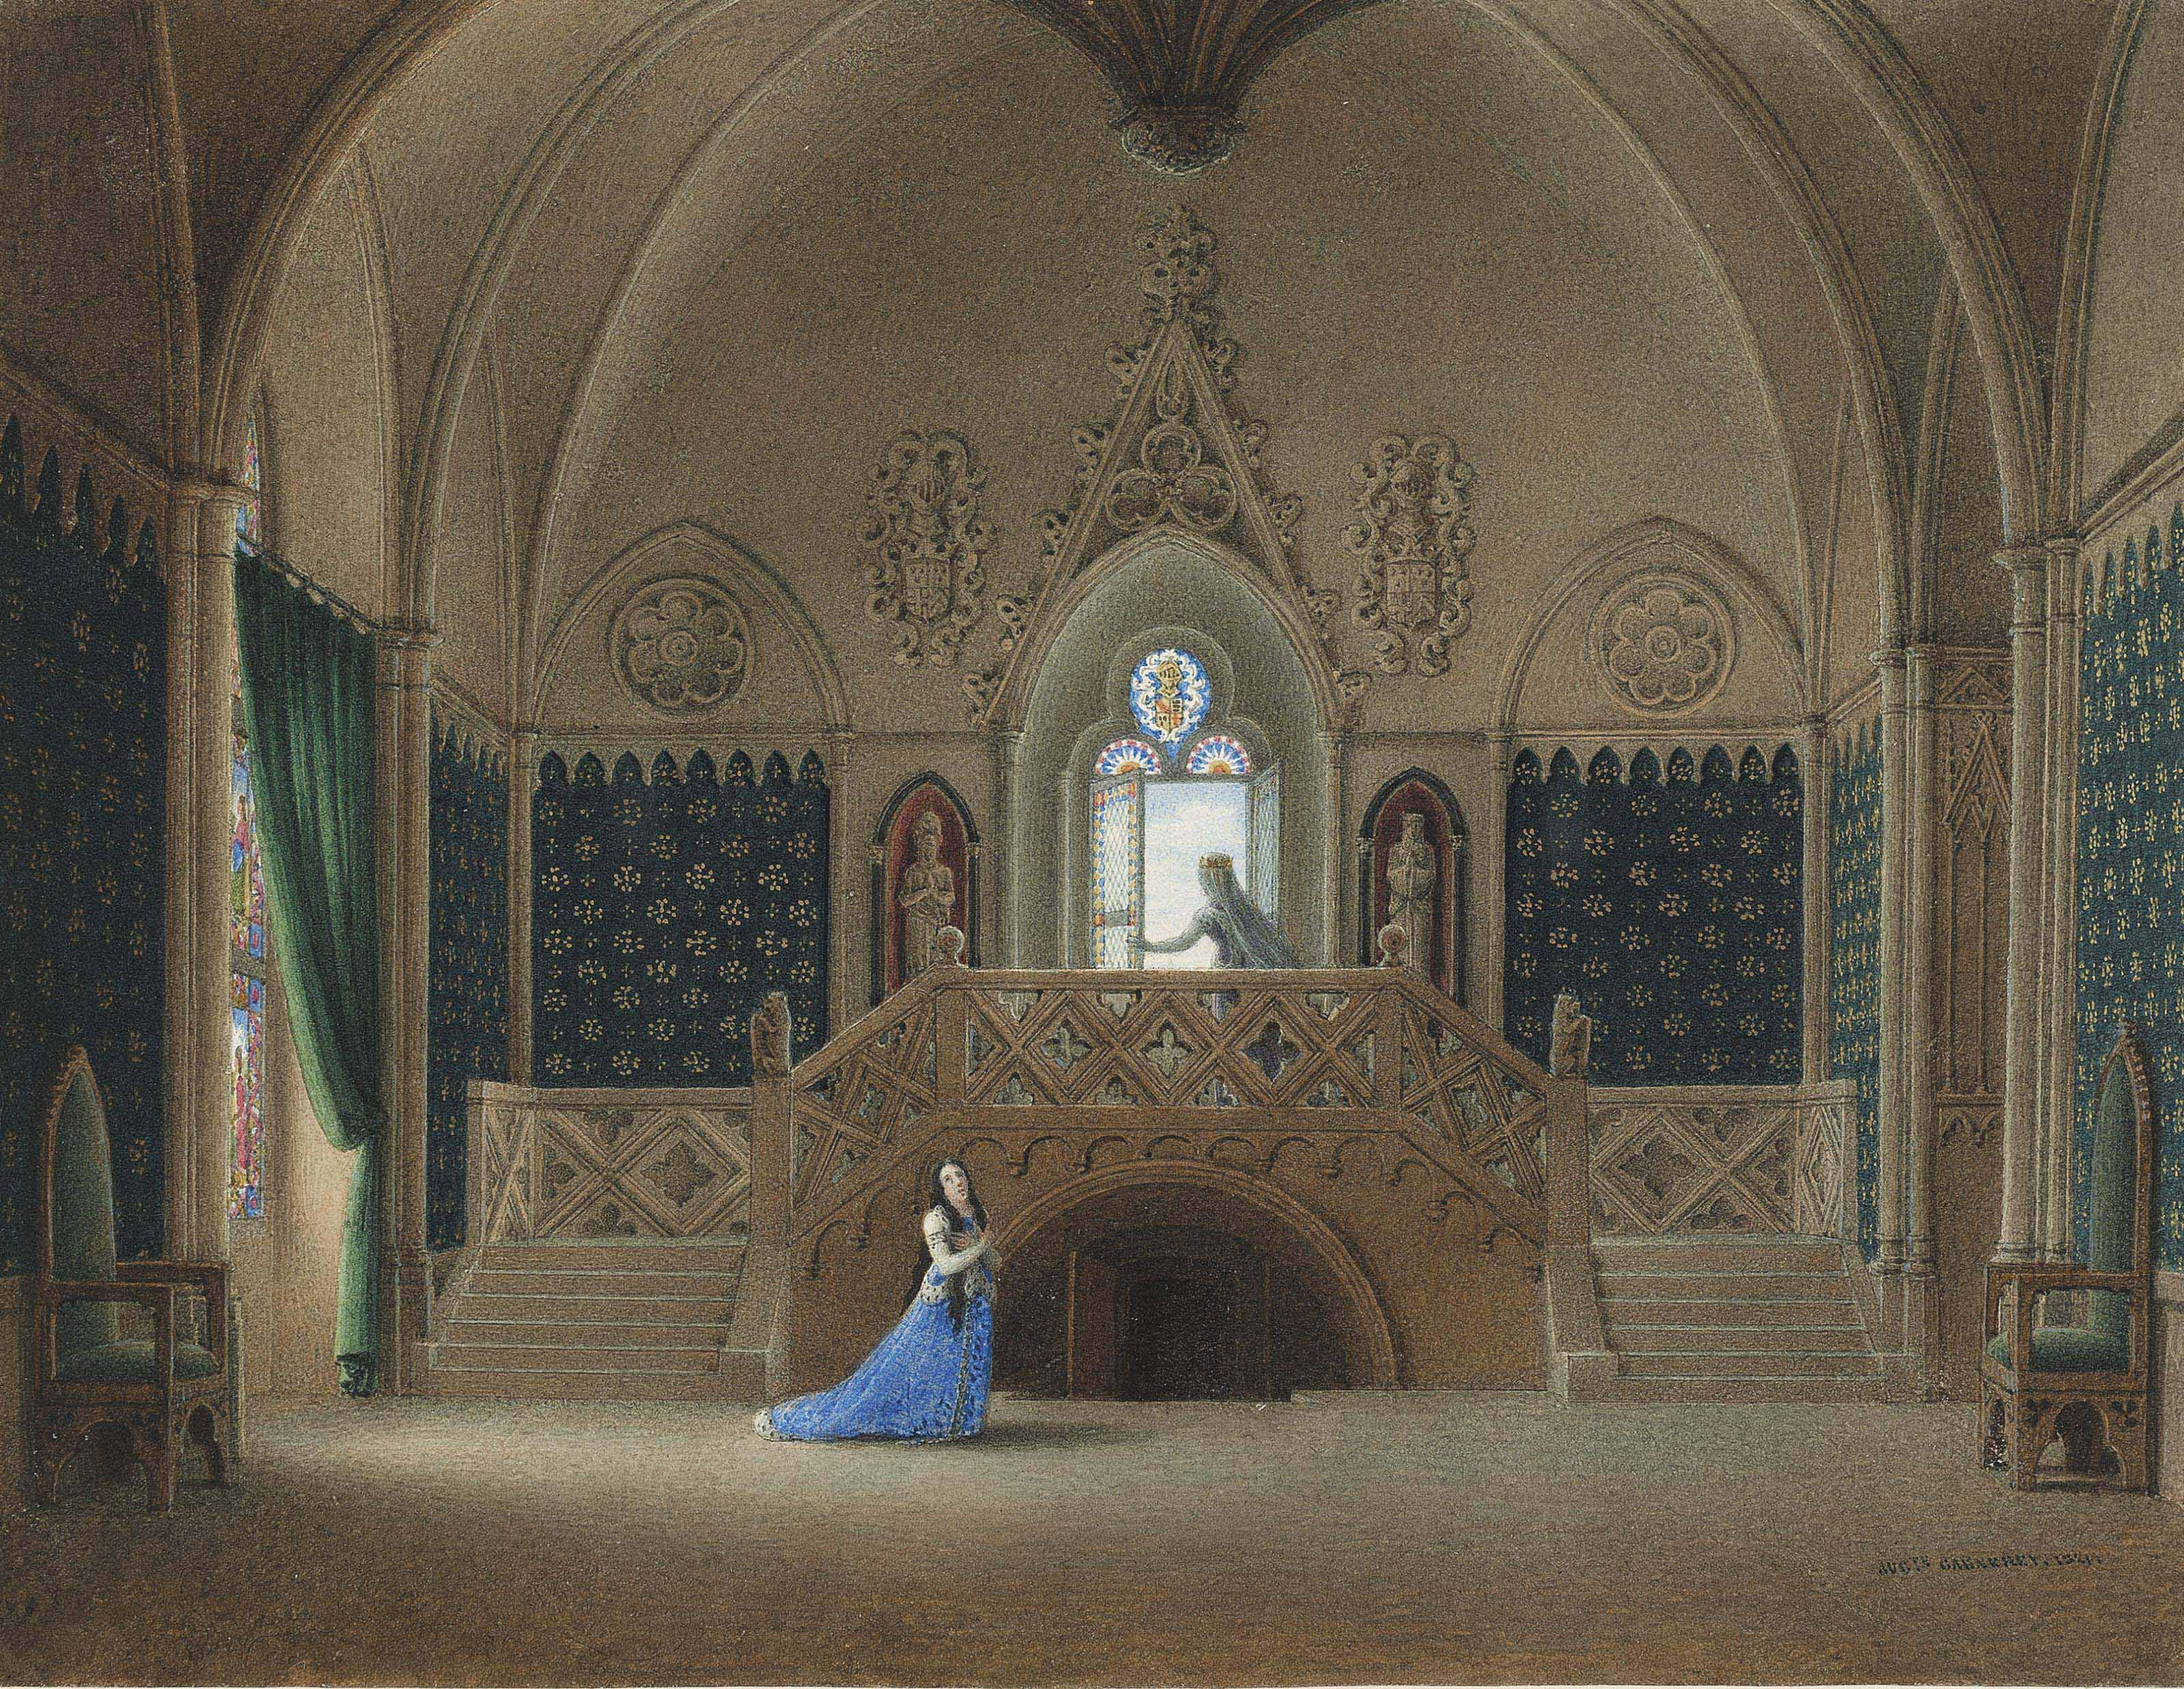 Two women in medieval costume in a Gothic interior